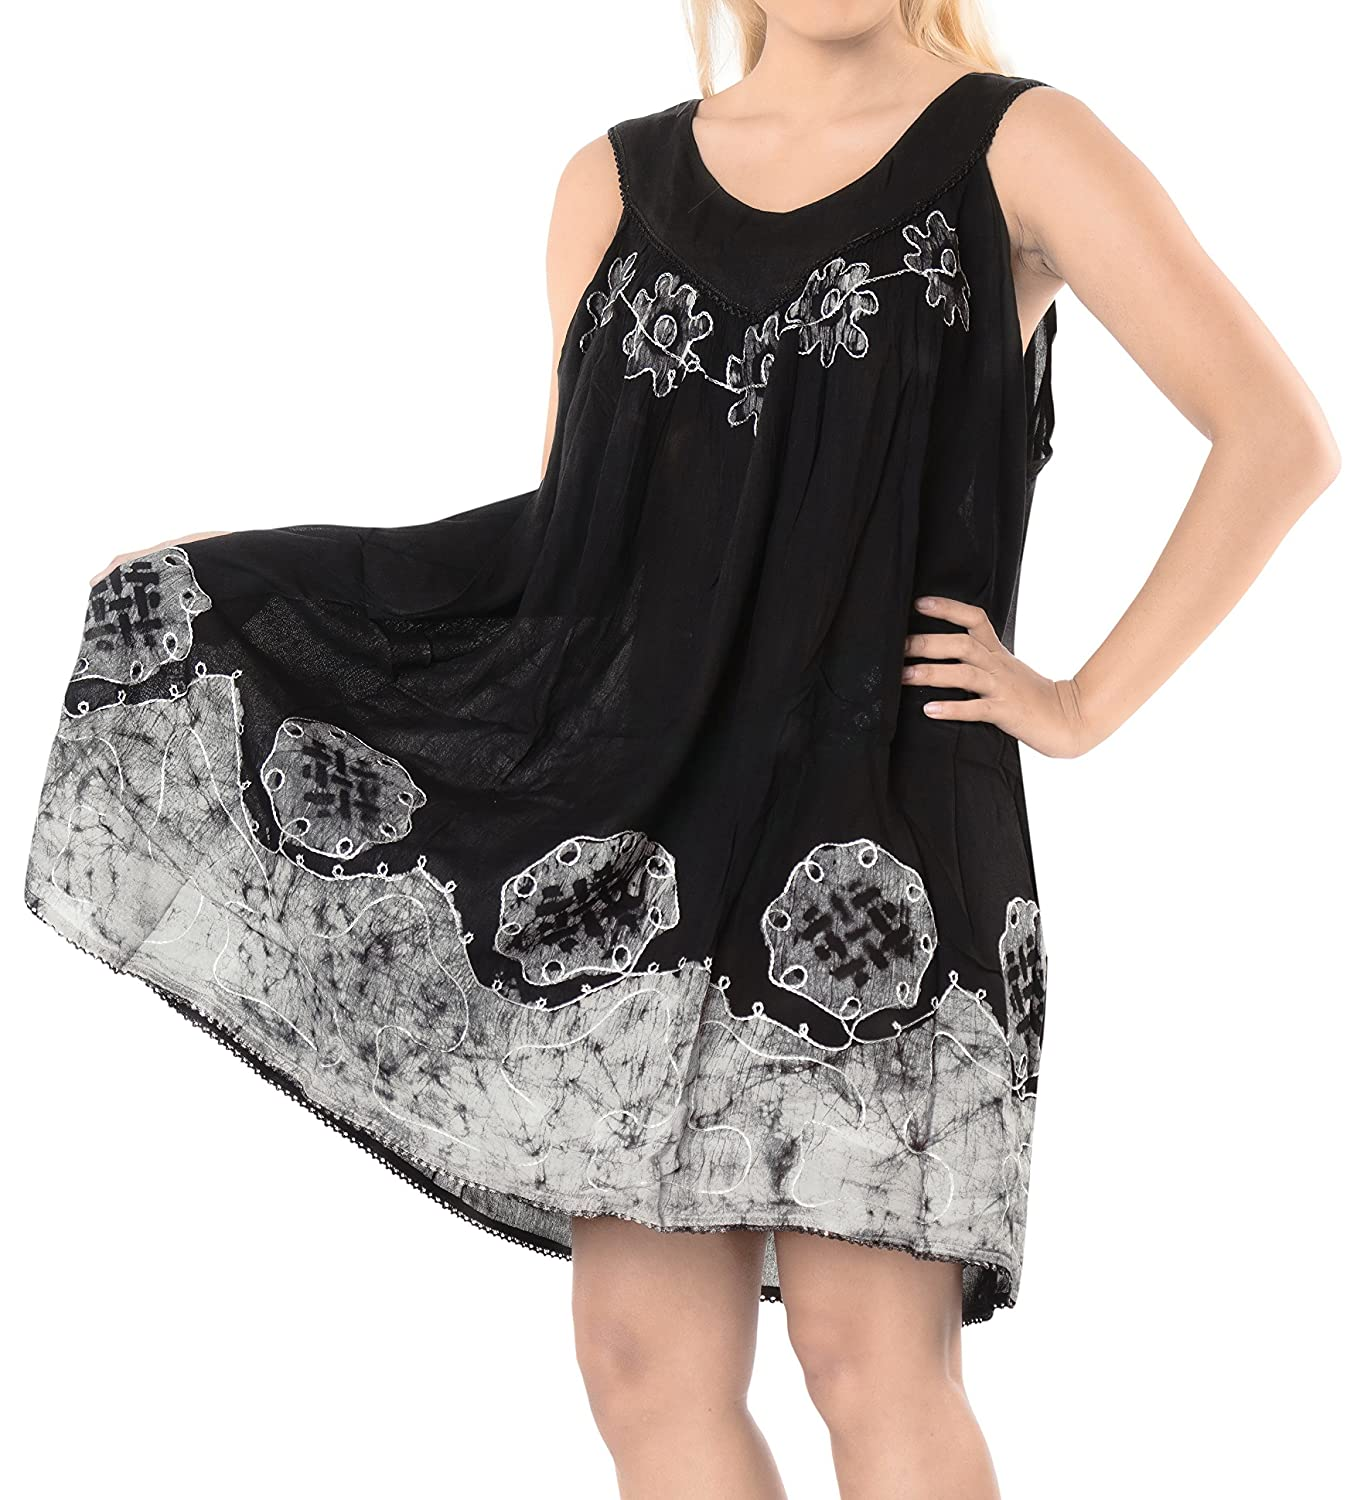 cceac191b5bc Enjoy Beach, Breeze and Nature with La Leela\'s VIBRANT BEACH COLLECTION and  stay calm and classy! ==> Clothing Type : Casual Beach Dress